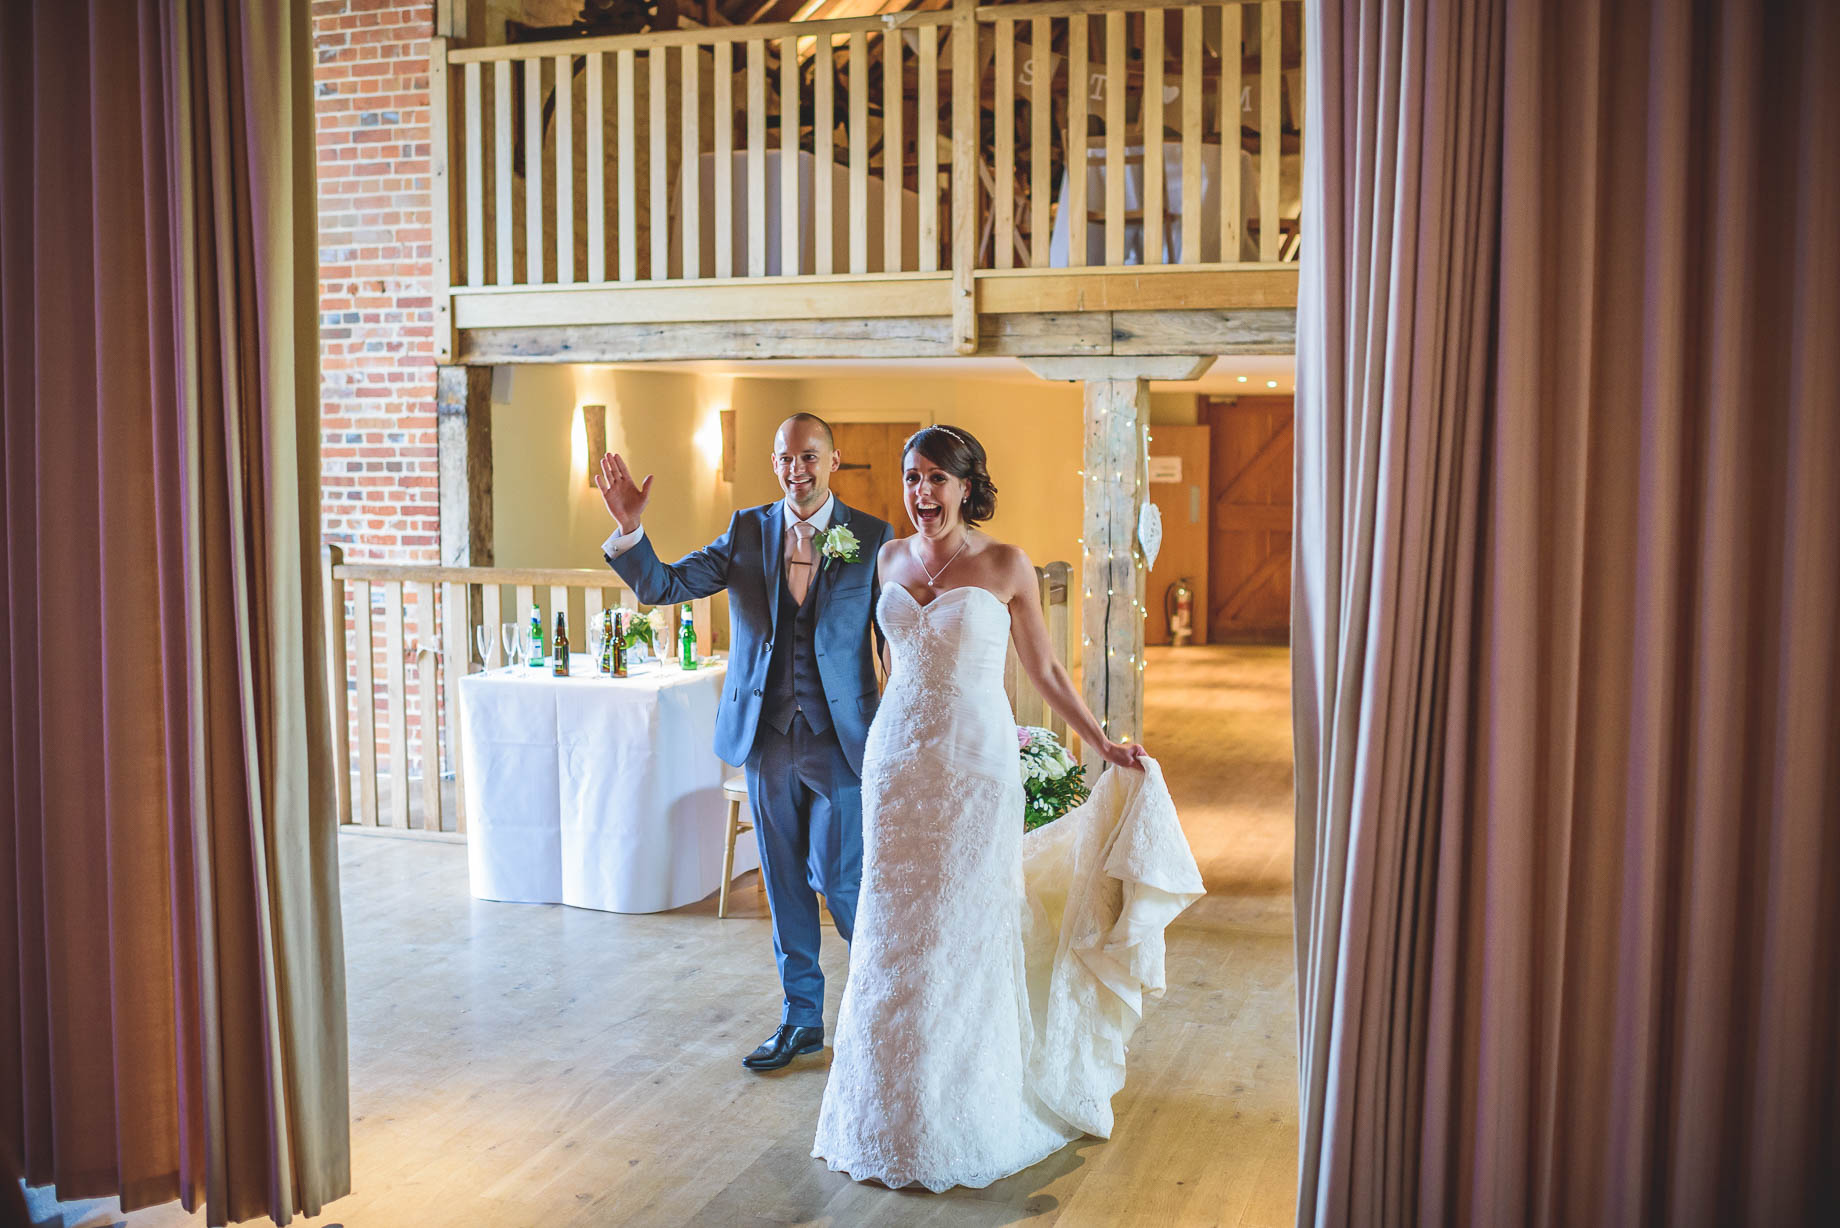 Bury Court Barn wedding photography - Guy Collier Photography - Karen and John (118 of 166)